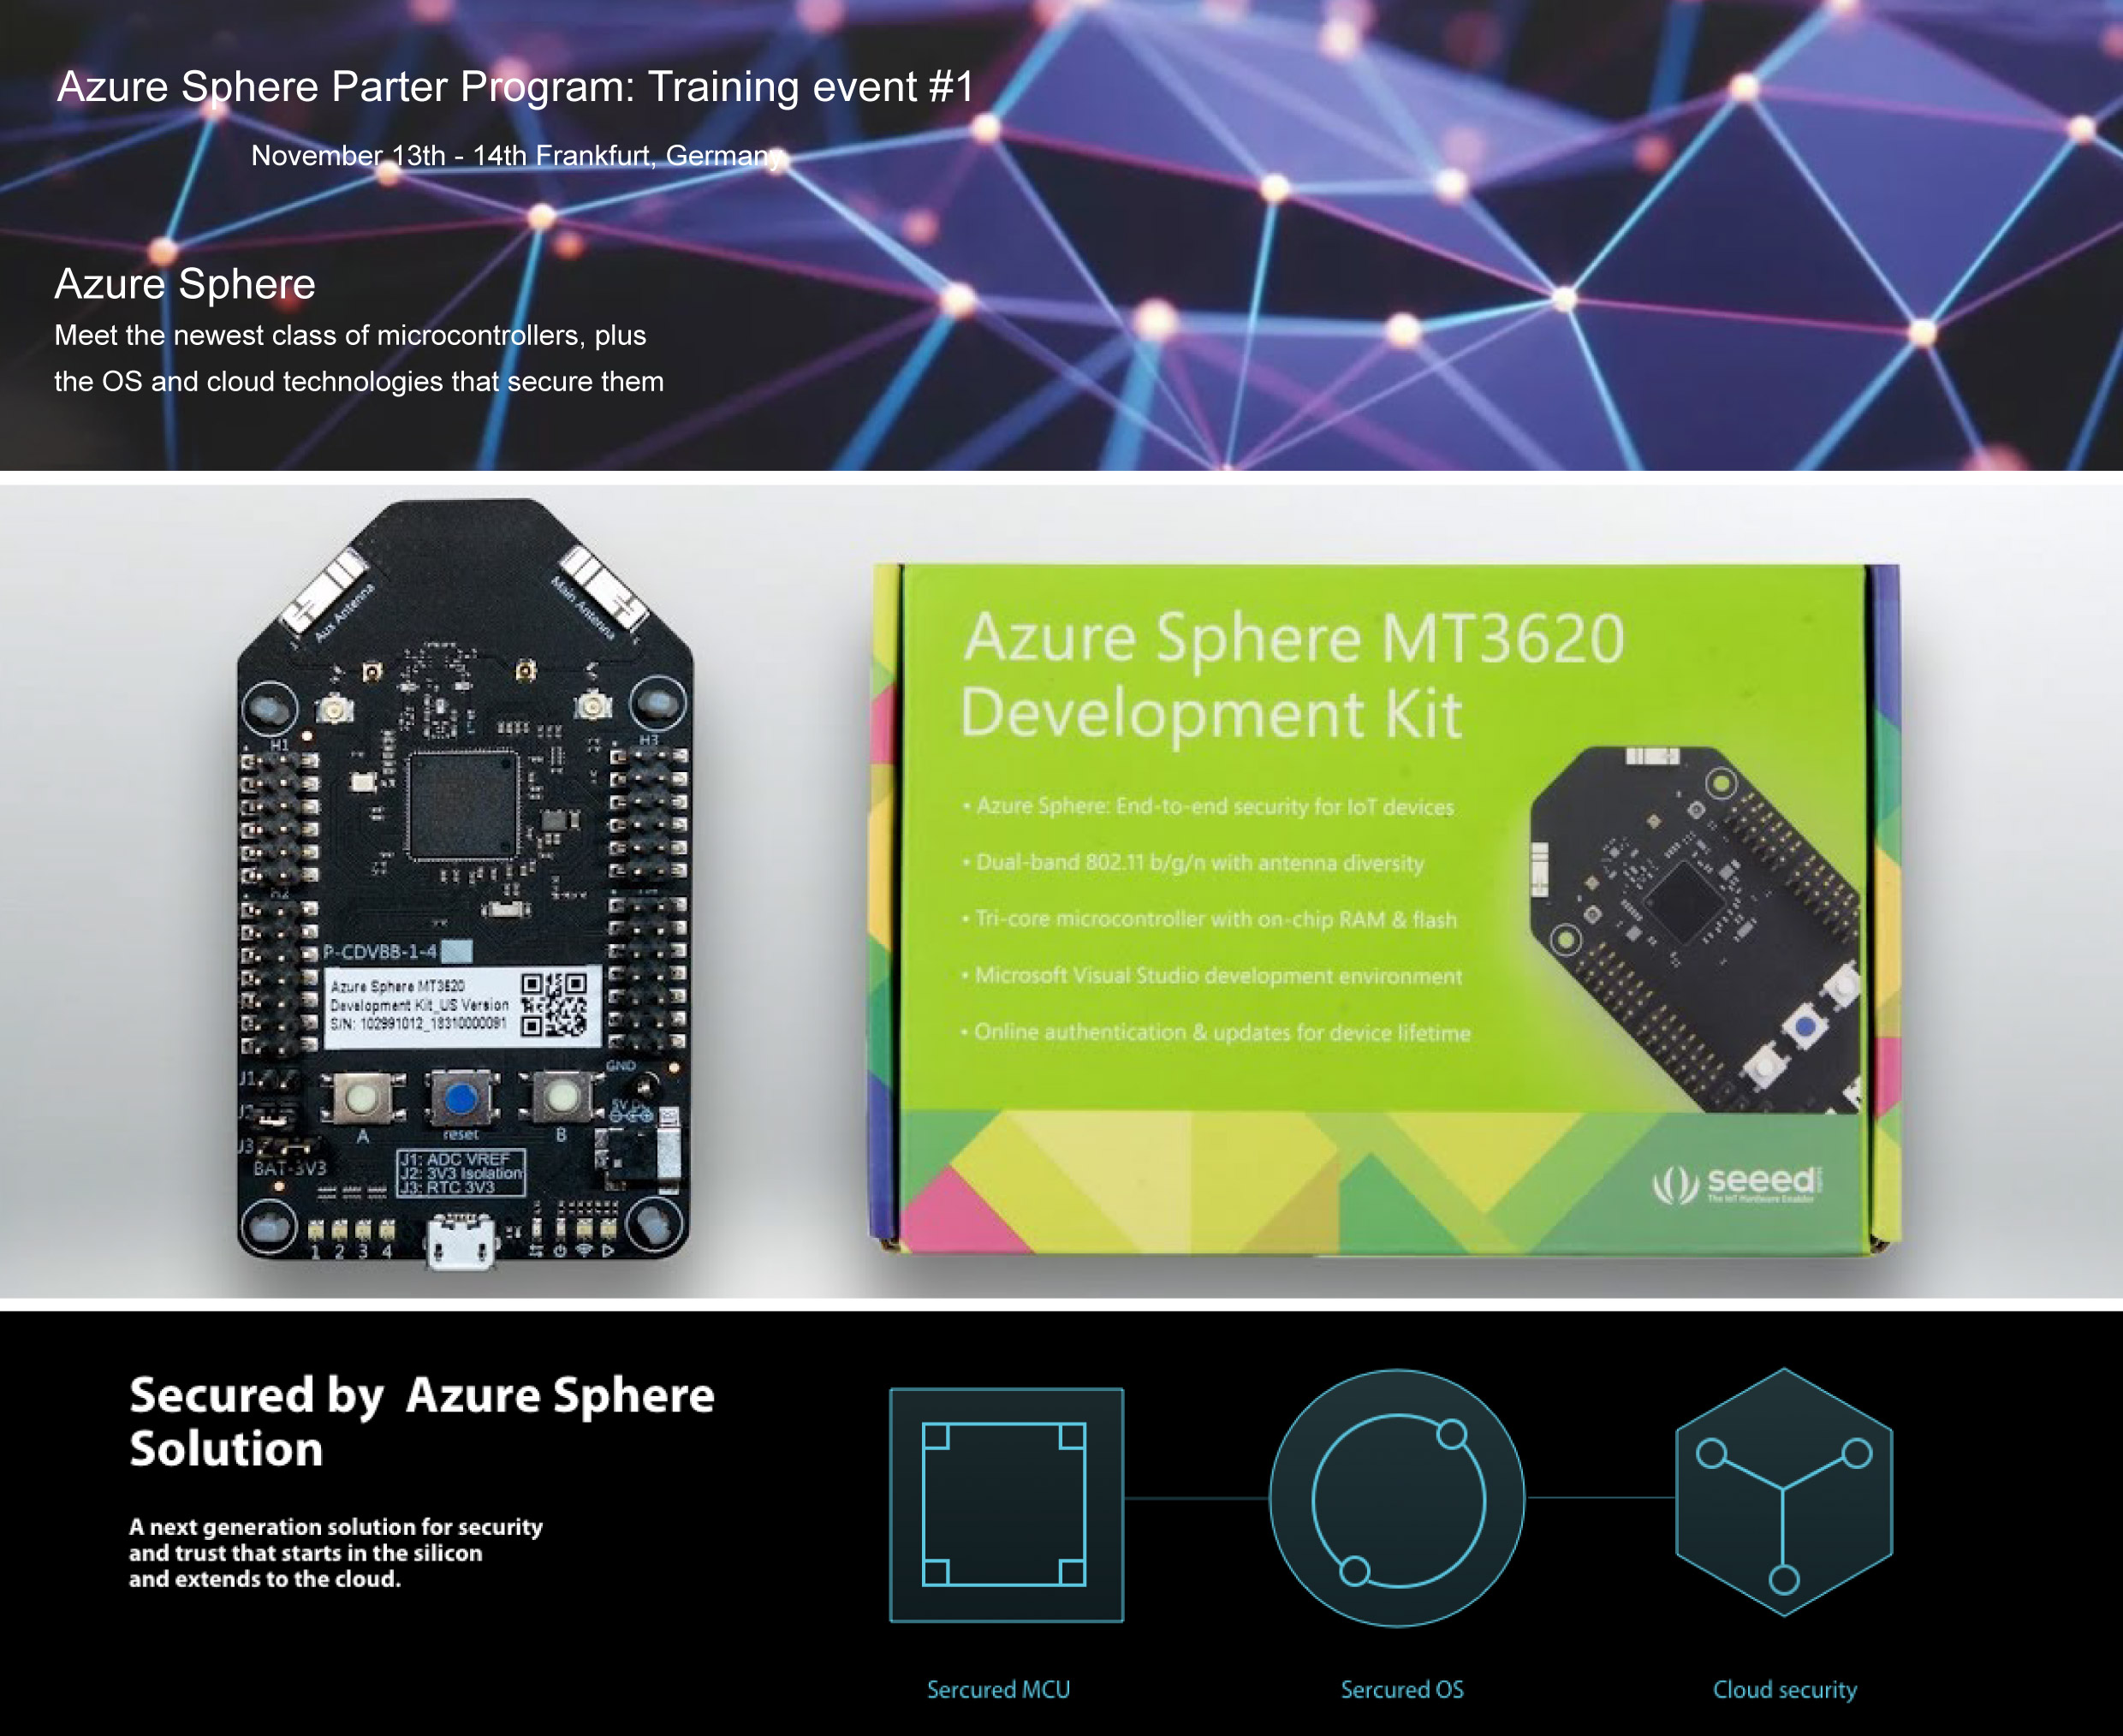 MAC AND THE AZURE SPHERE PARTNER PROGRAM